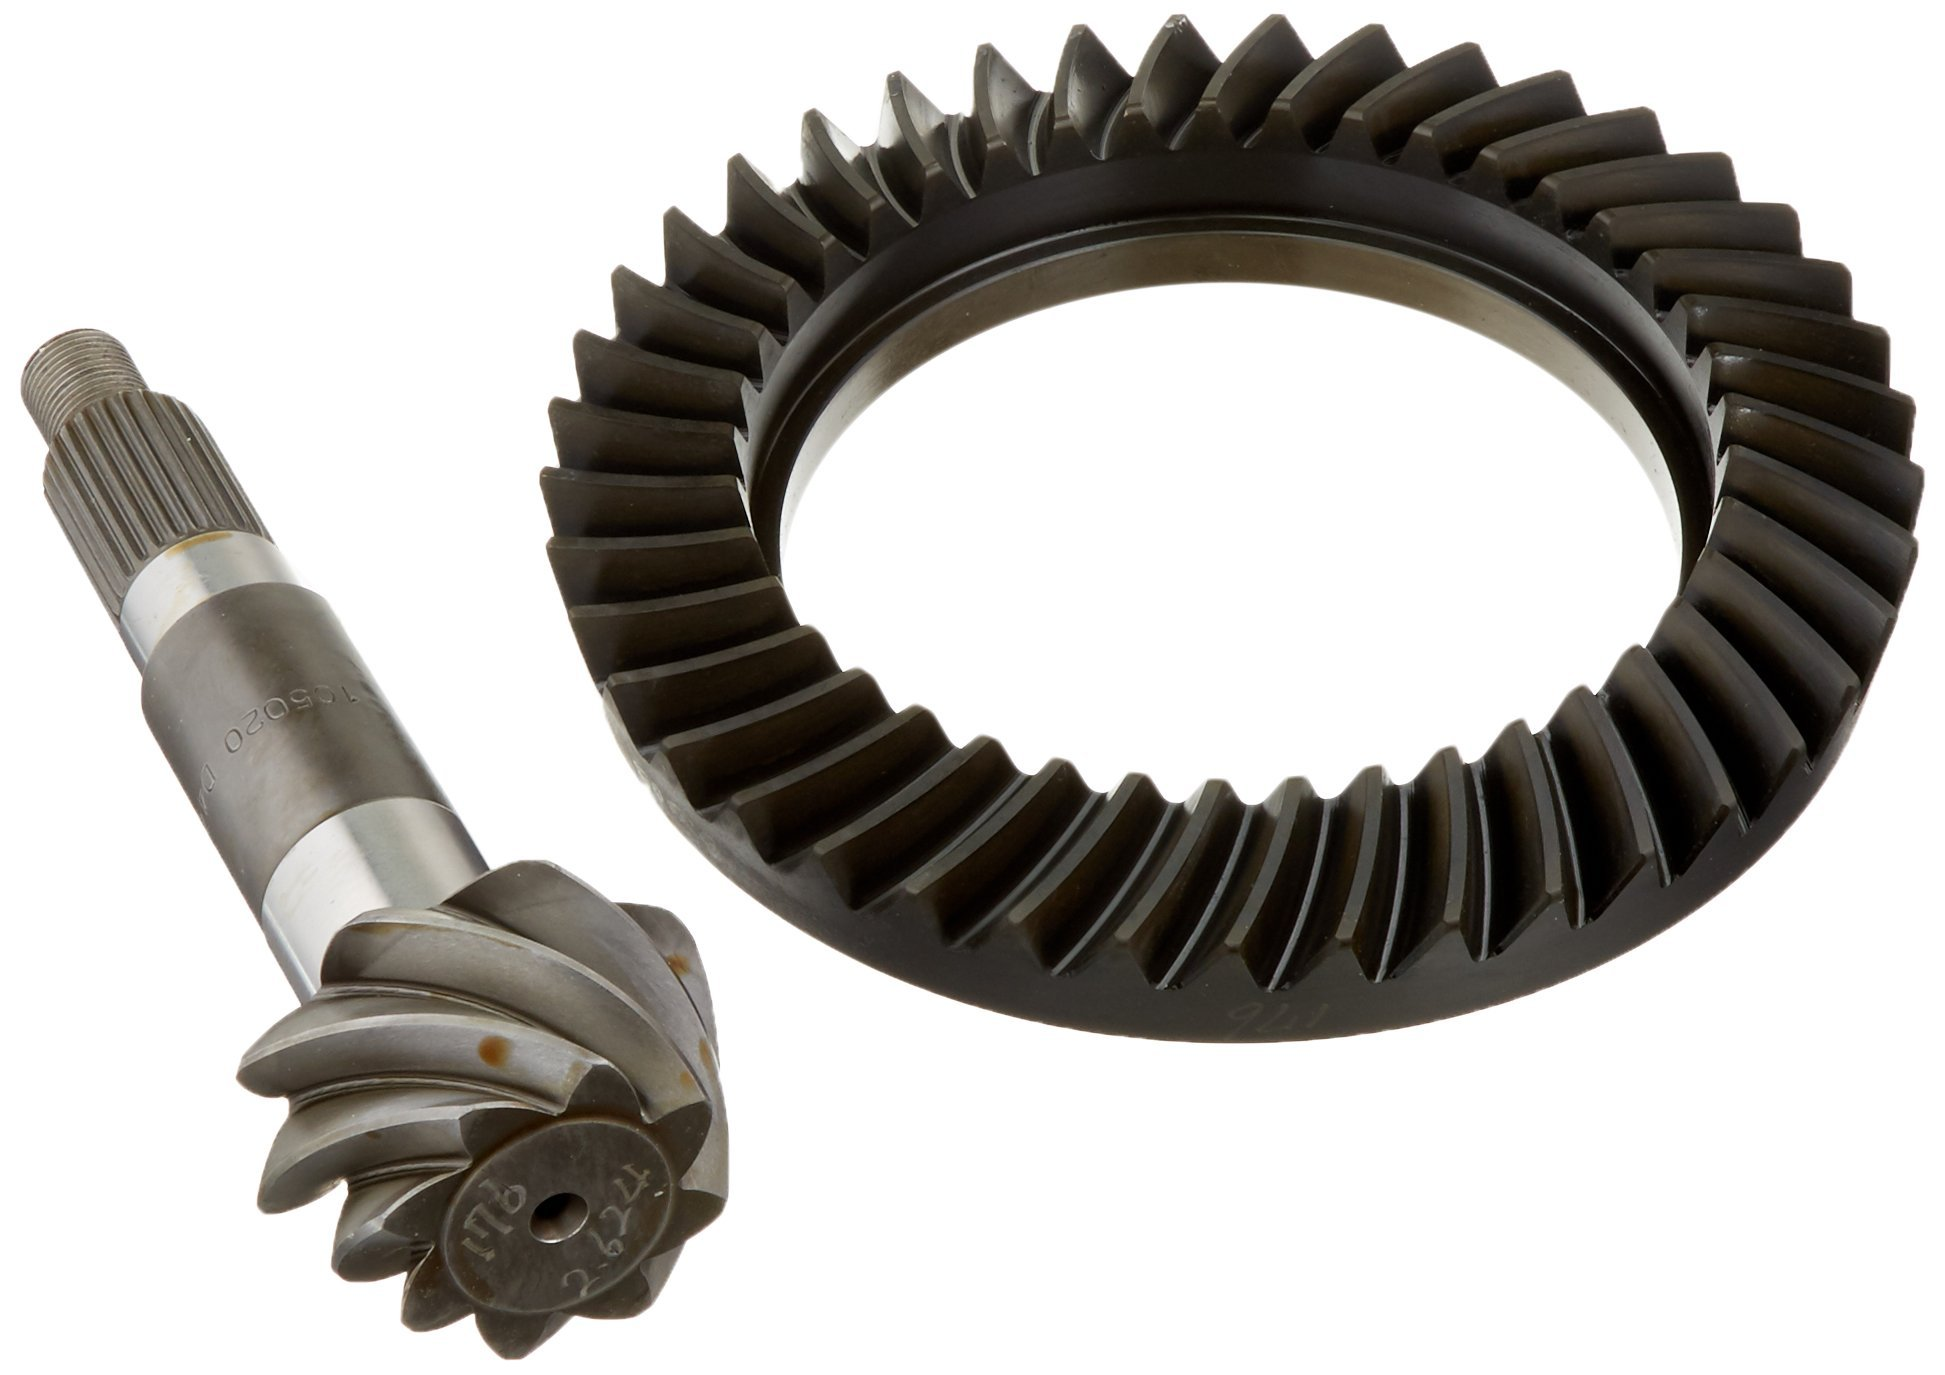 Motive Gear (D44-513) Performance Ring and Pinion Differential Set, Dana 44 - 1967 & Earlier, 41-8 Teeth, 5.13 Ratio, Standard by Motive Gear